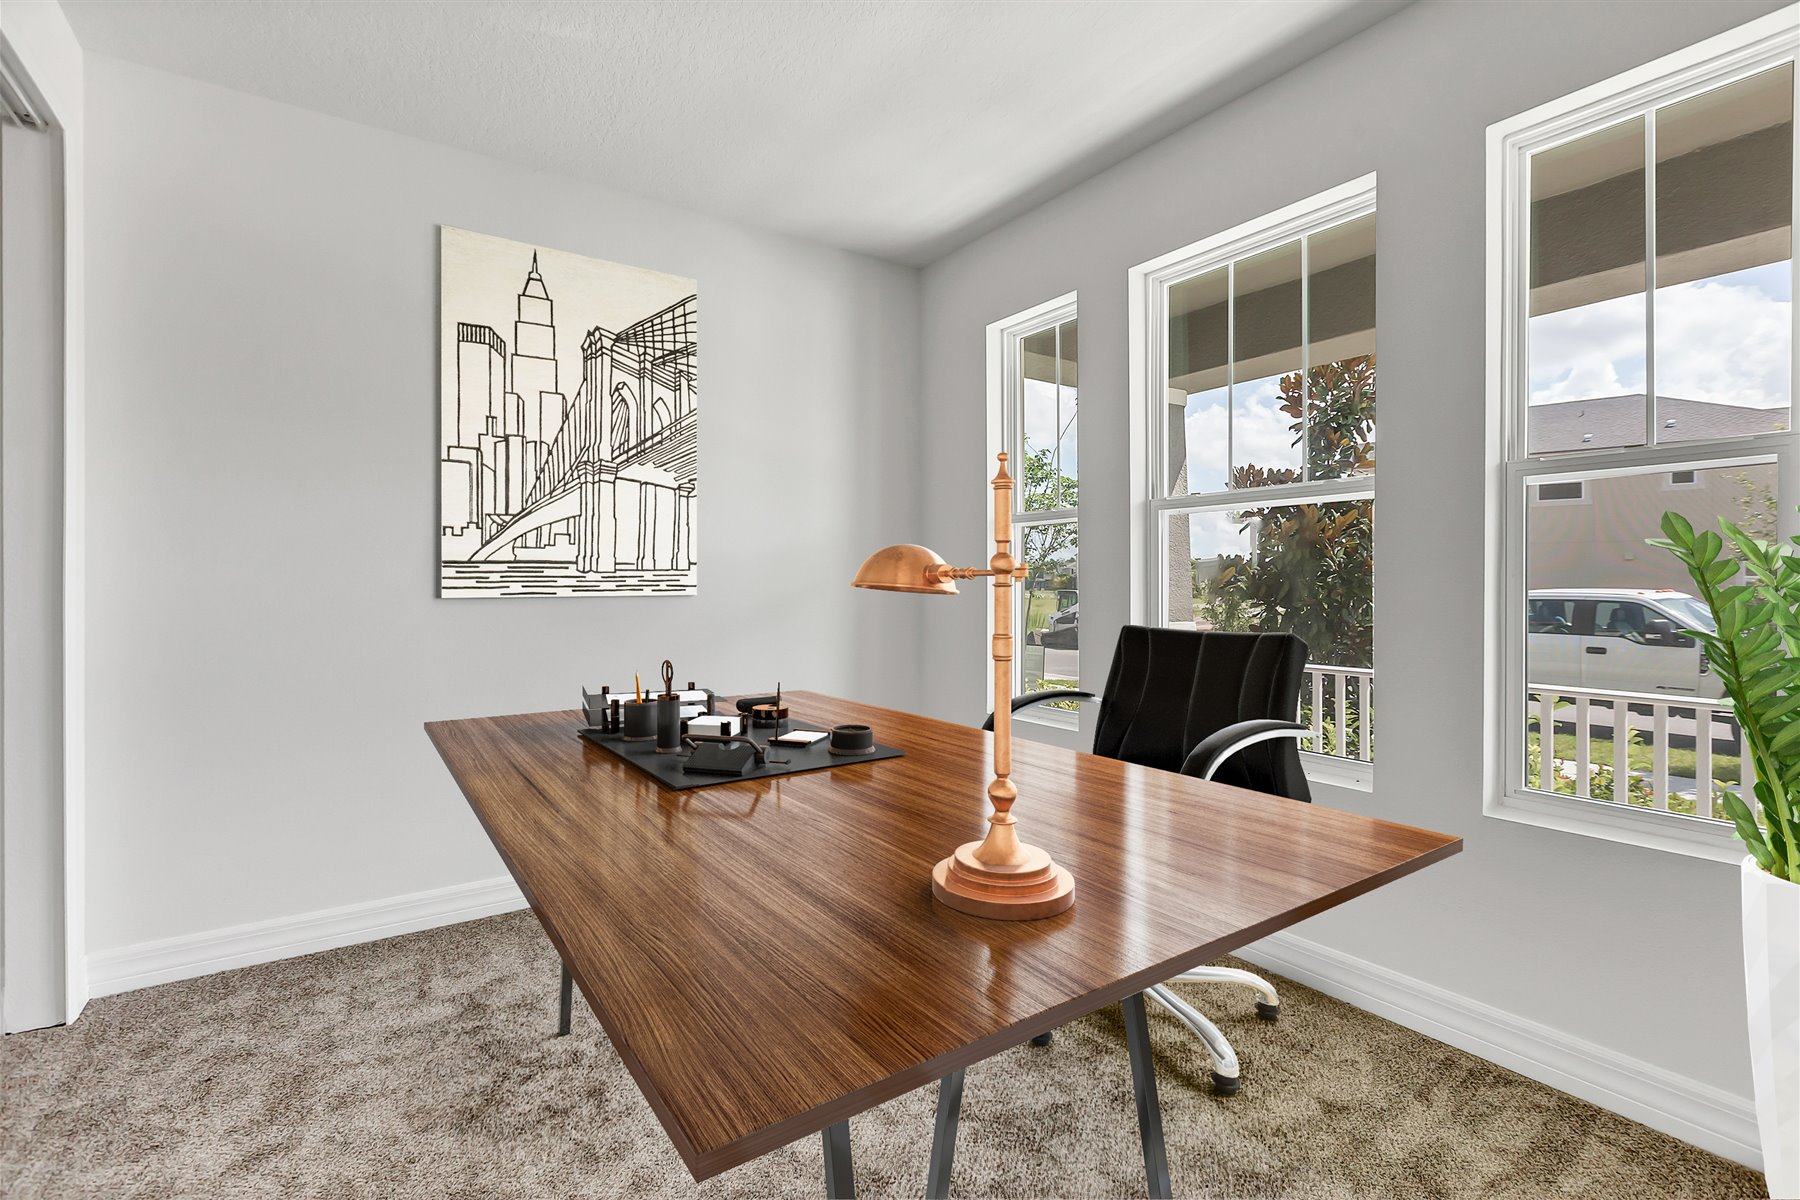 Newport Plan Study Room at Meridian Parks in Orlando Florida by Mattamy Homes